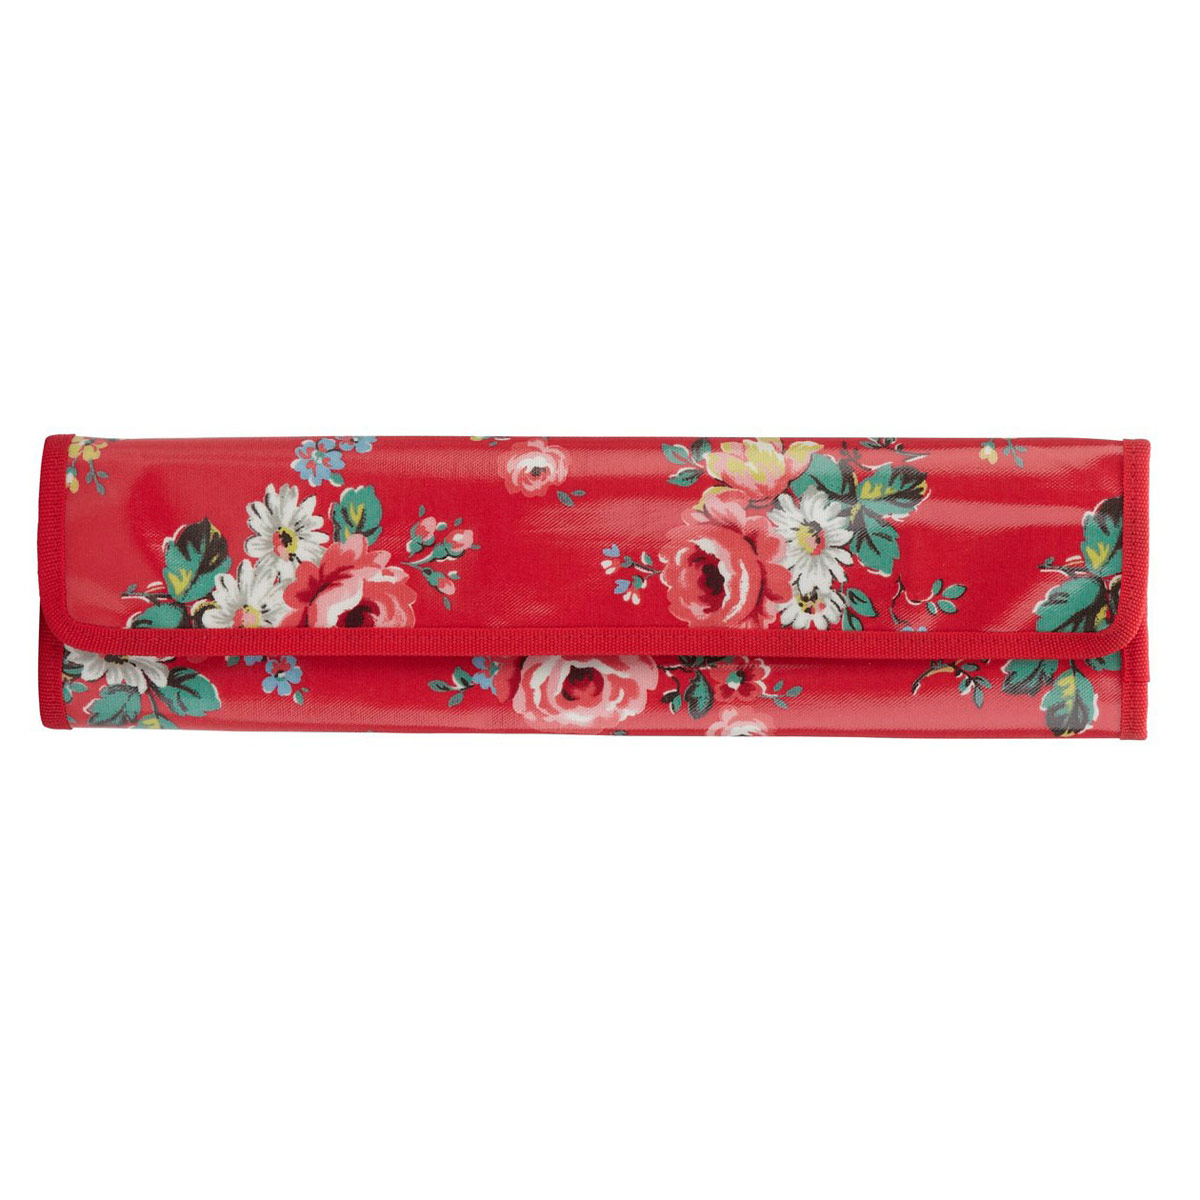 Cath Kidston Knitting Needle Case Kentish Rose Red   Penny Royal Gifts